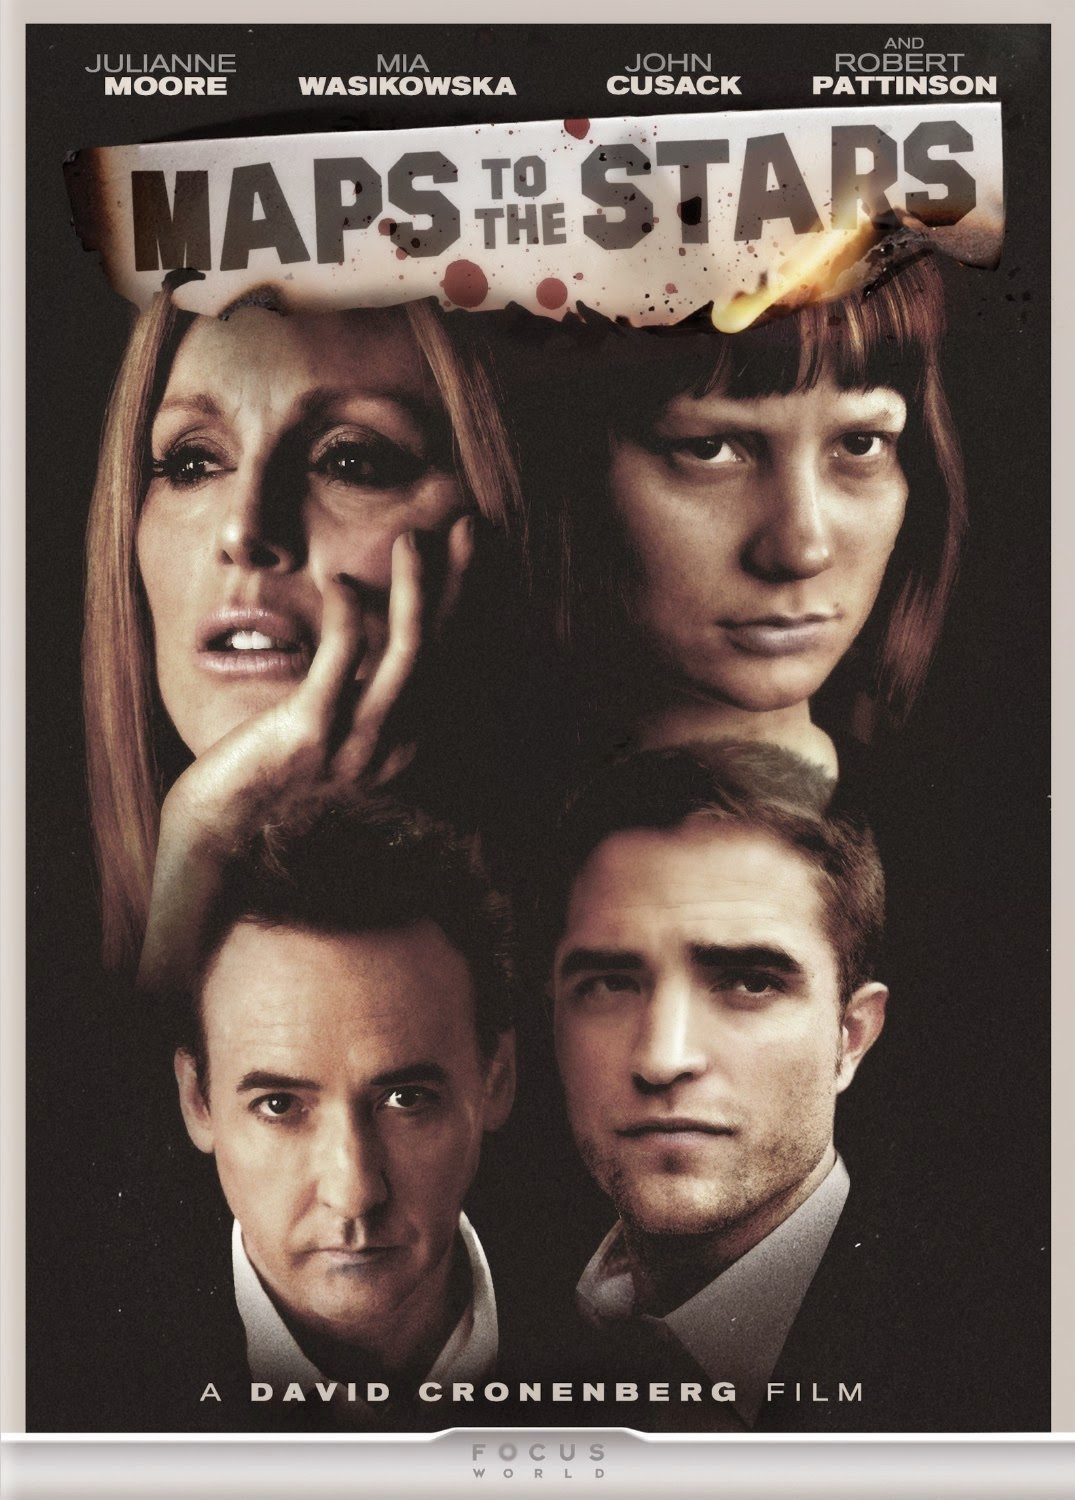 http://www.amazon.com/Maps-Stars-Julianne-Moore/dp/B00T5DYSNS/ref=sr_1_2_twi_2_vid_twi_2_dvd?s=movies-tv&ie=UTF8&qid=1429100046&sr=1-2&keywords=maps+to+the+stars